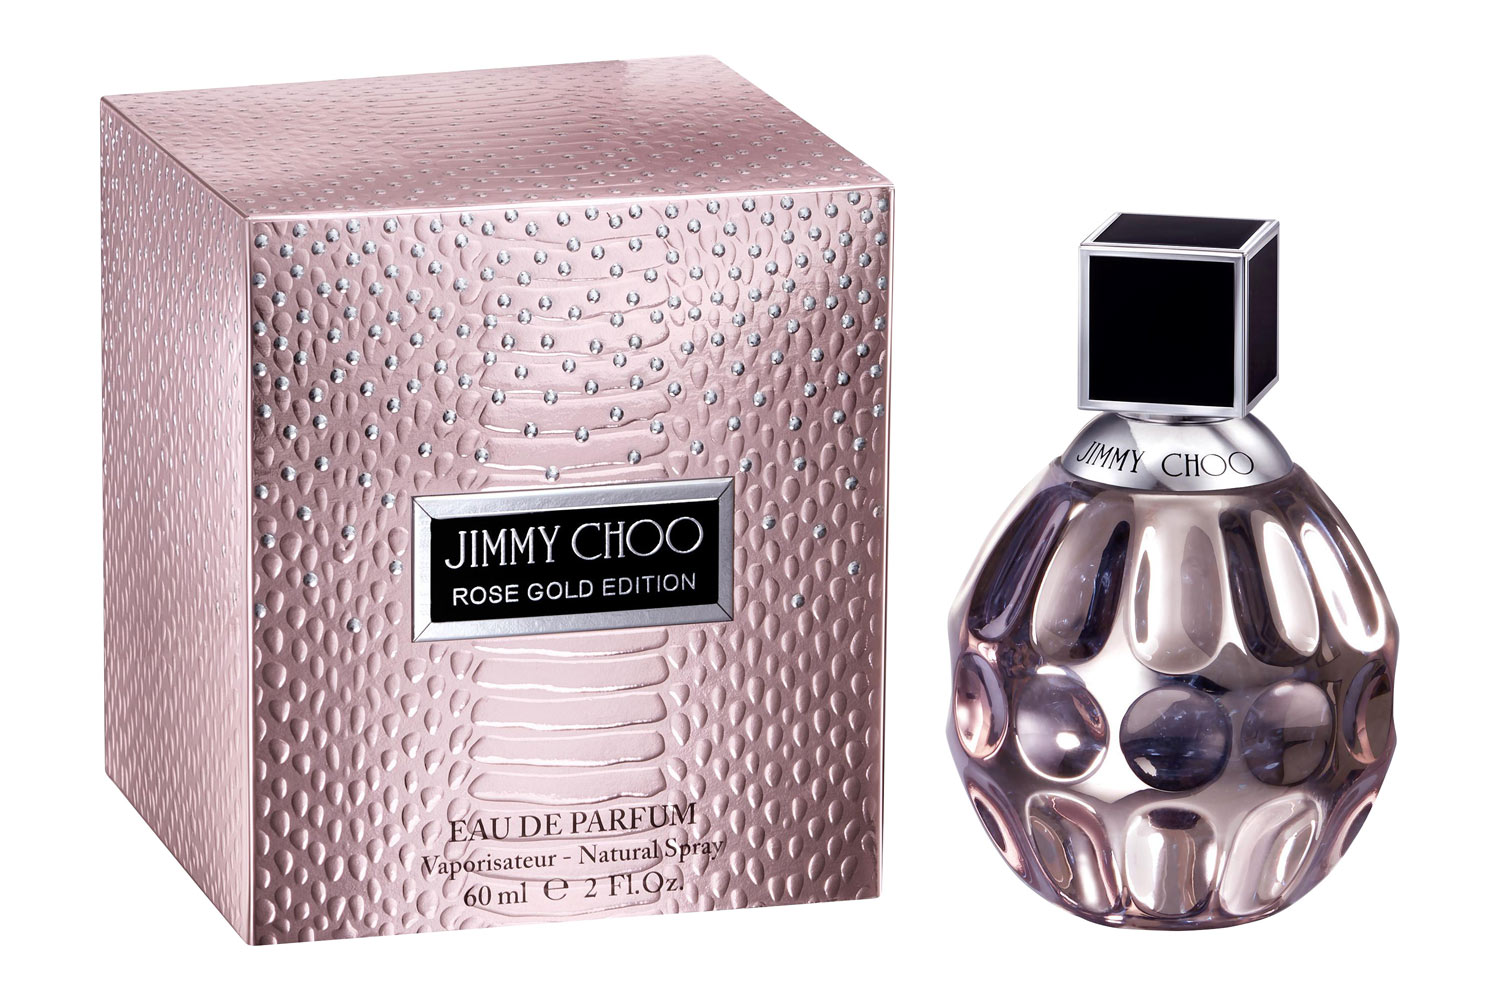 474e7df878e9 Rose Gold Edition Jimmy Choo perfume - a new fragrance for women 2017